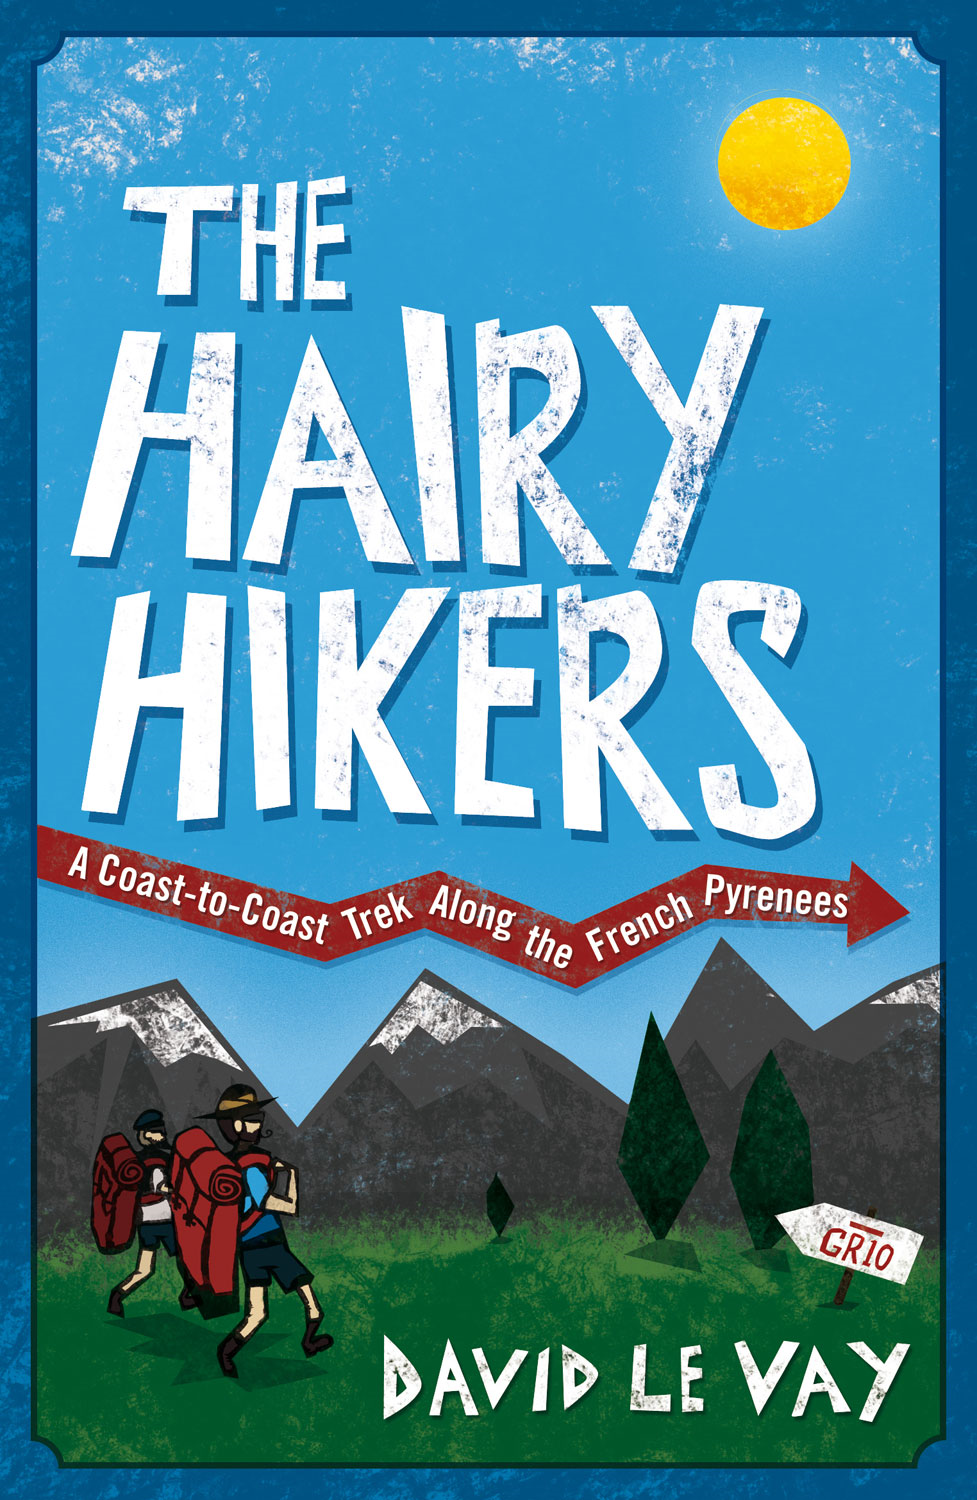 The Hairy Hikers: A Coast-to-Coast Trek Along the French Pyrenees By: David Le Vay